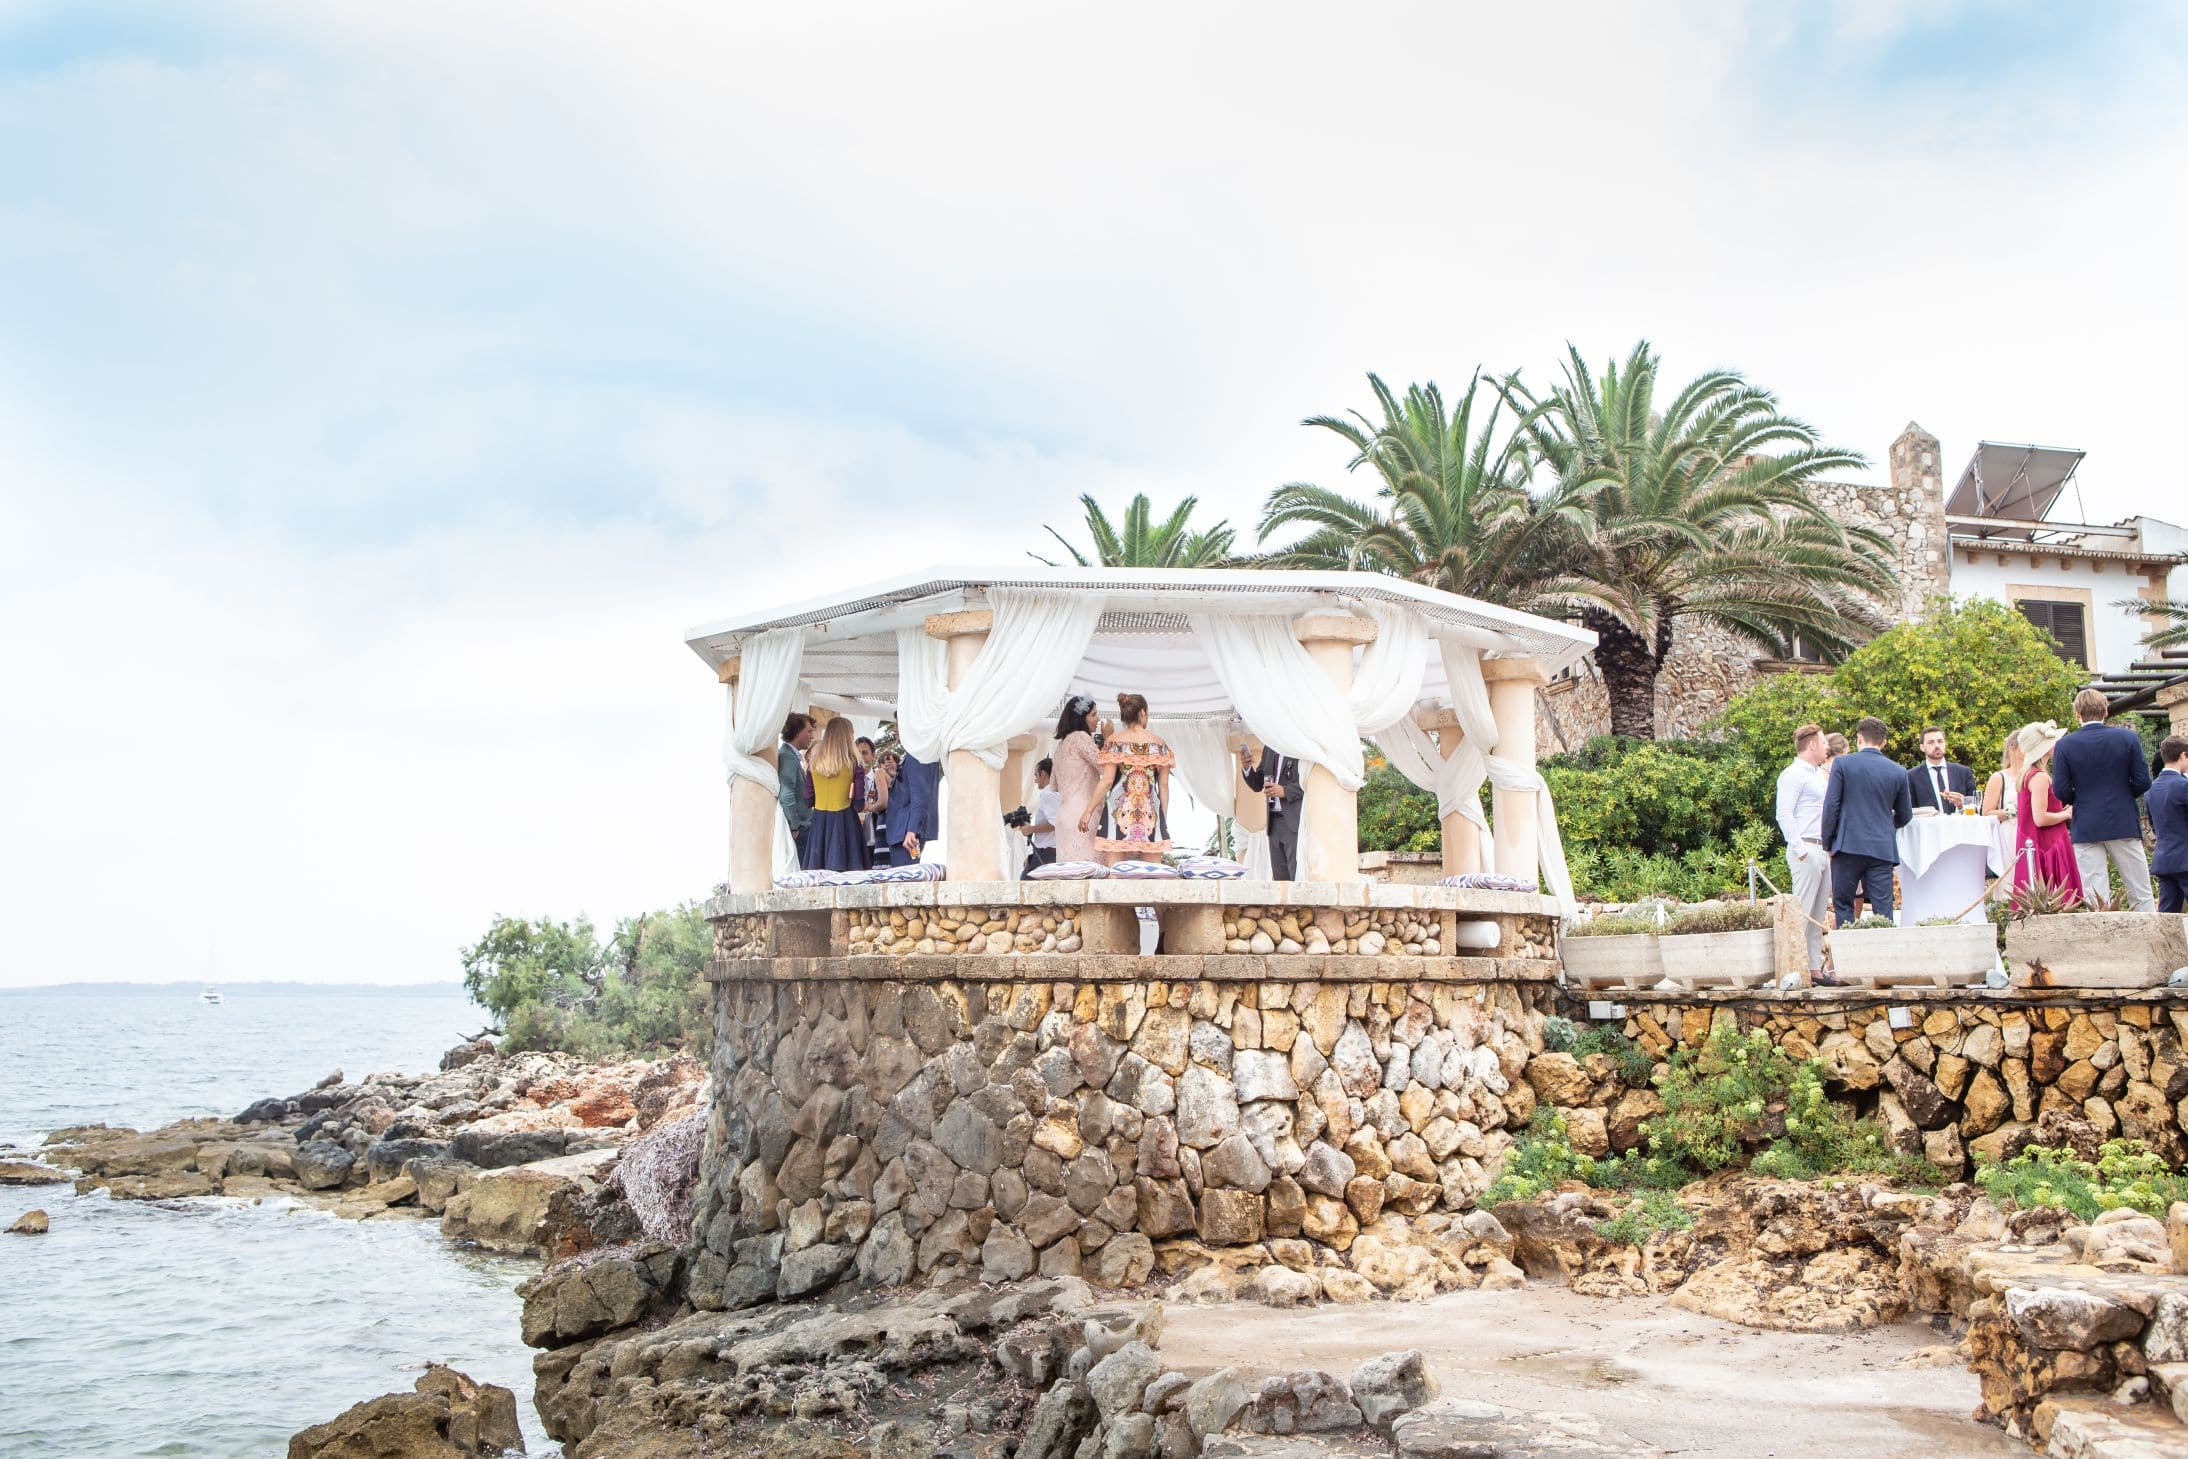 Million Memories_S&J_Hochzeitsfotograf_Mallorca_Spain_Wedding_Spanien Hochzeit_Balearen_Balearic islands_069